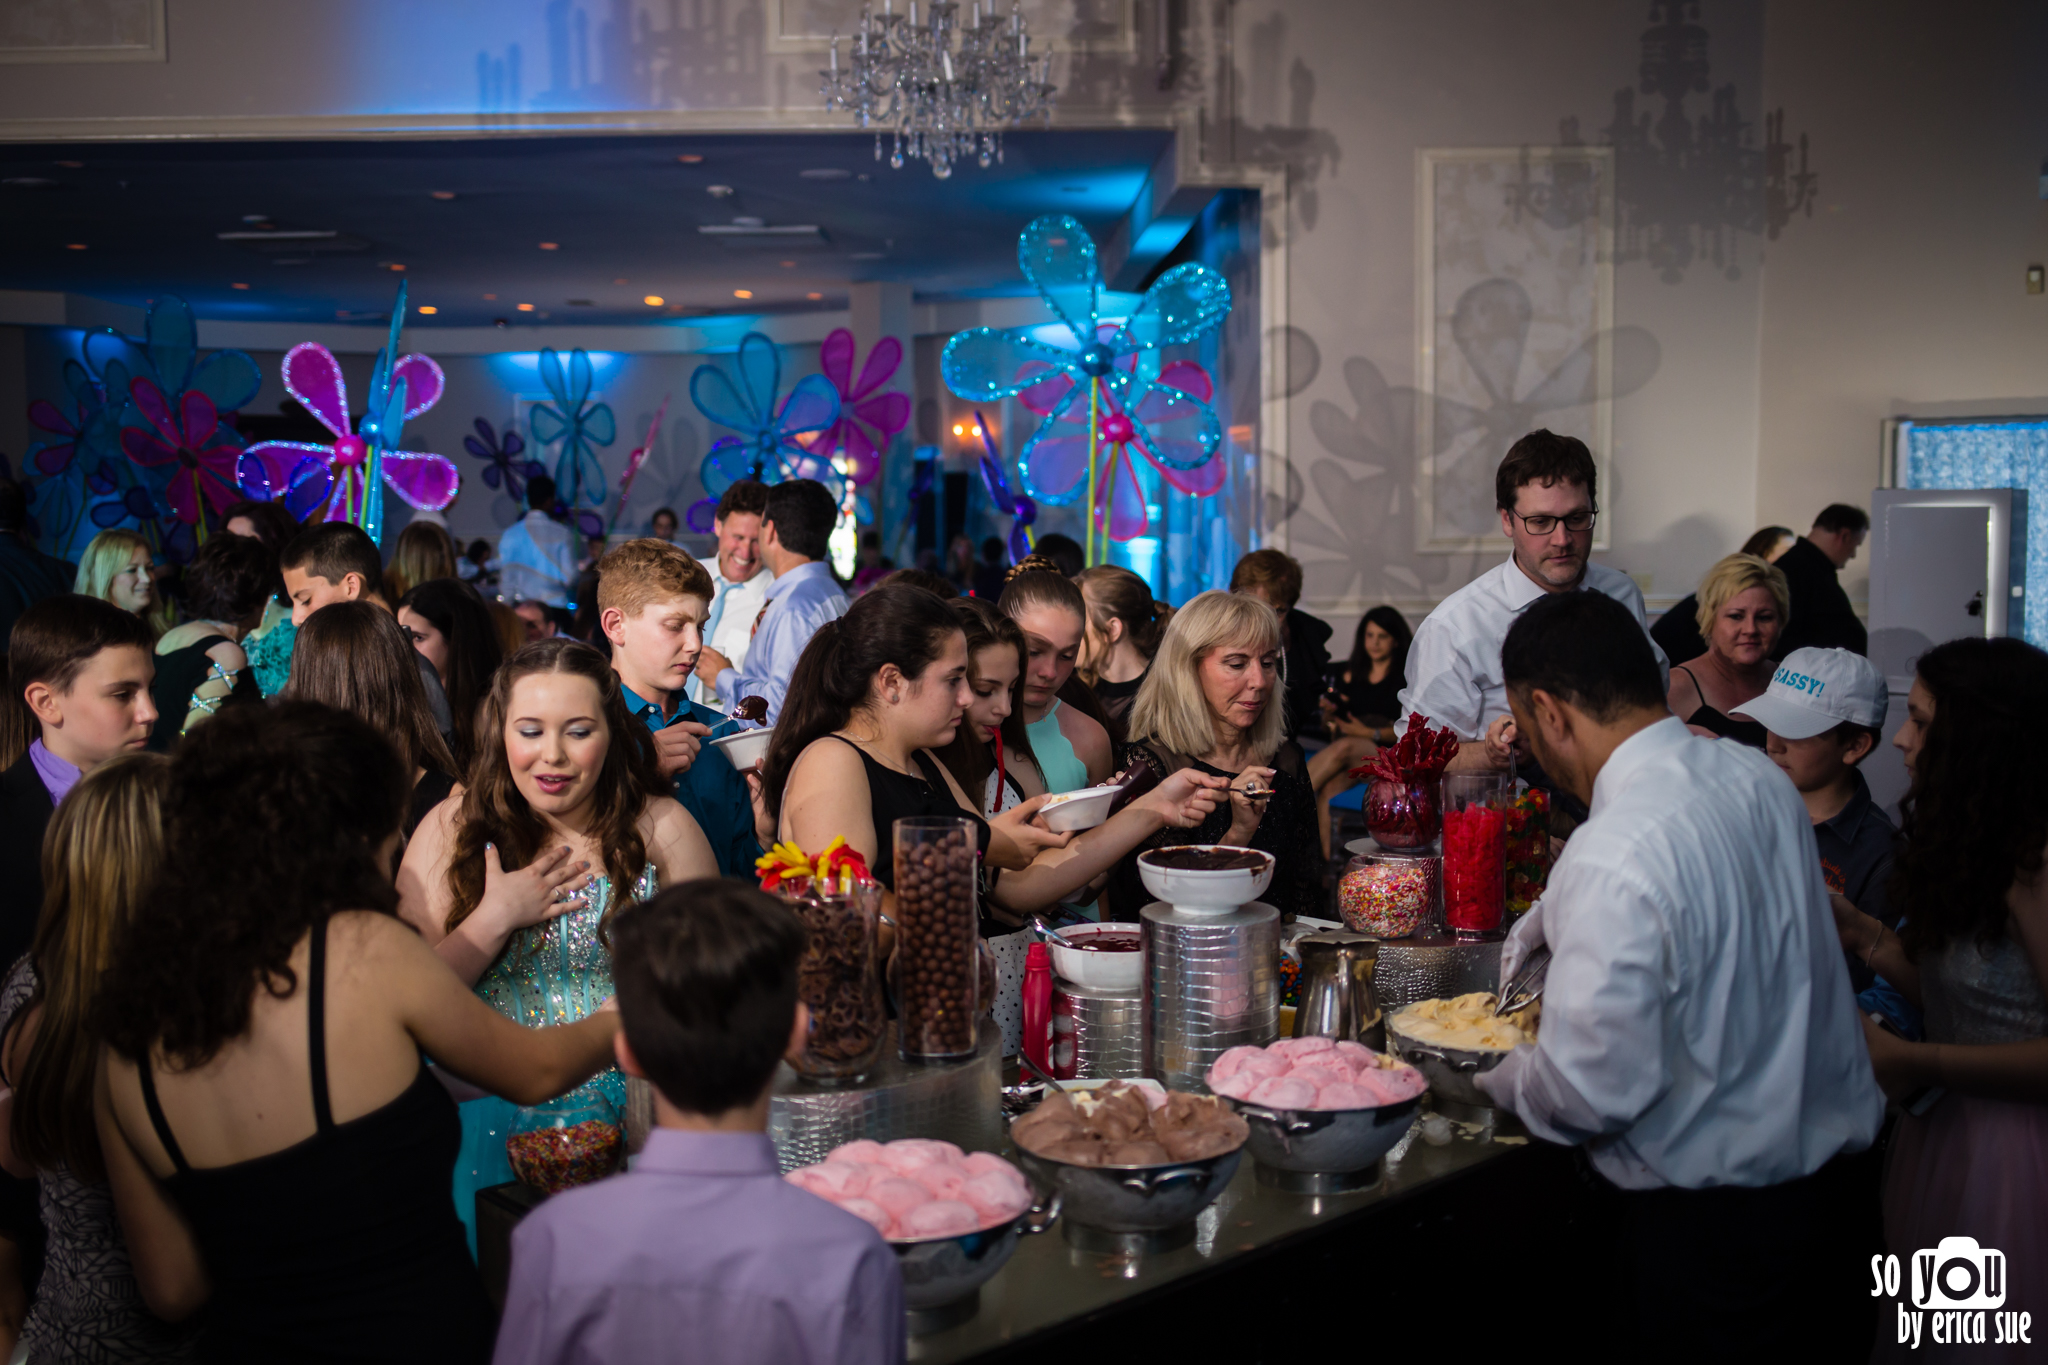 bat-mitzvah-photography-south-florida-broward-kol-ami-plantation-so-you-by-erica-sue-1817.jpg